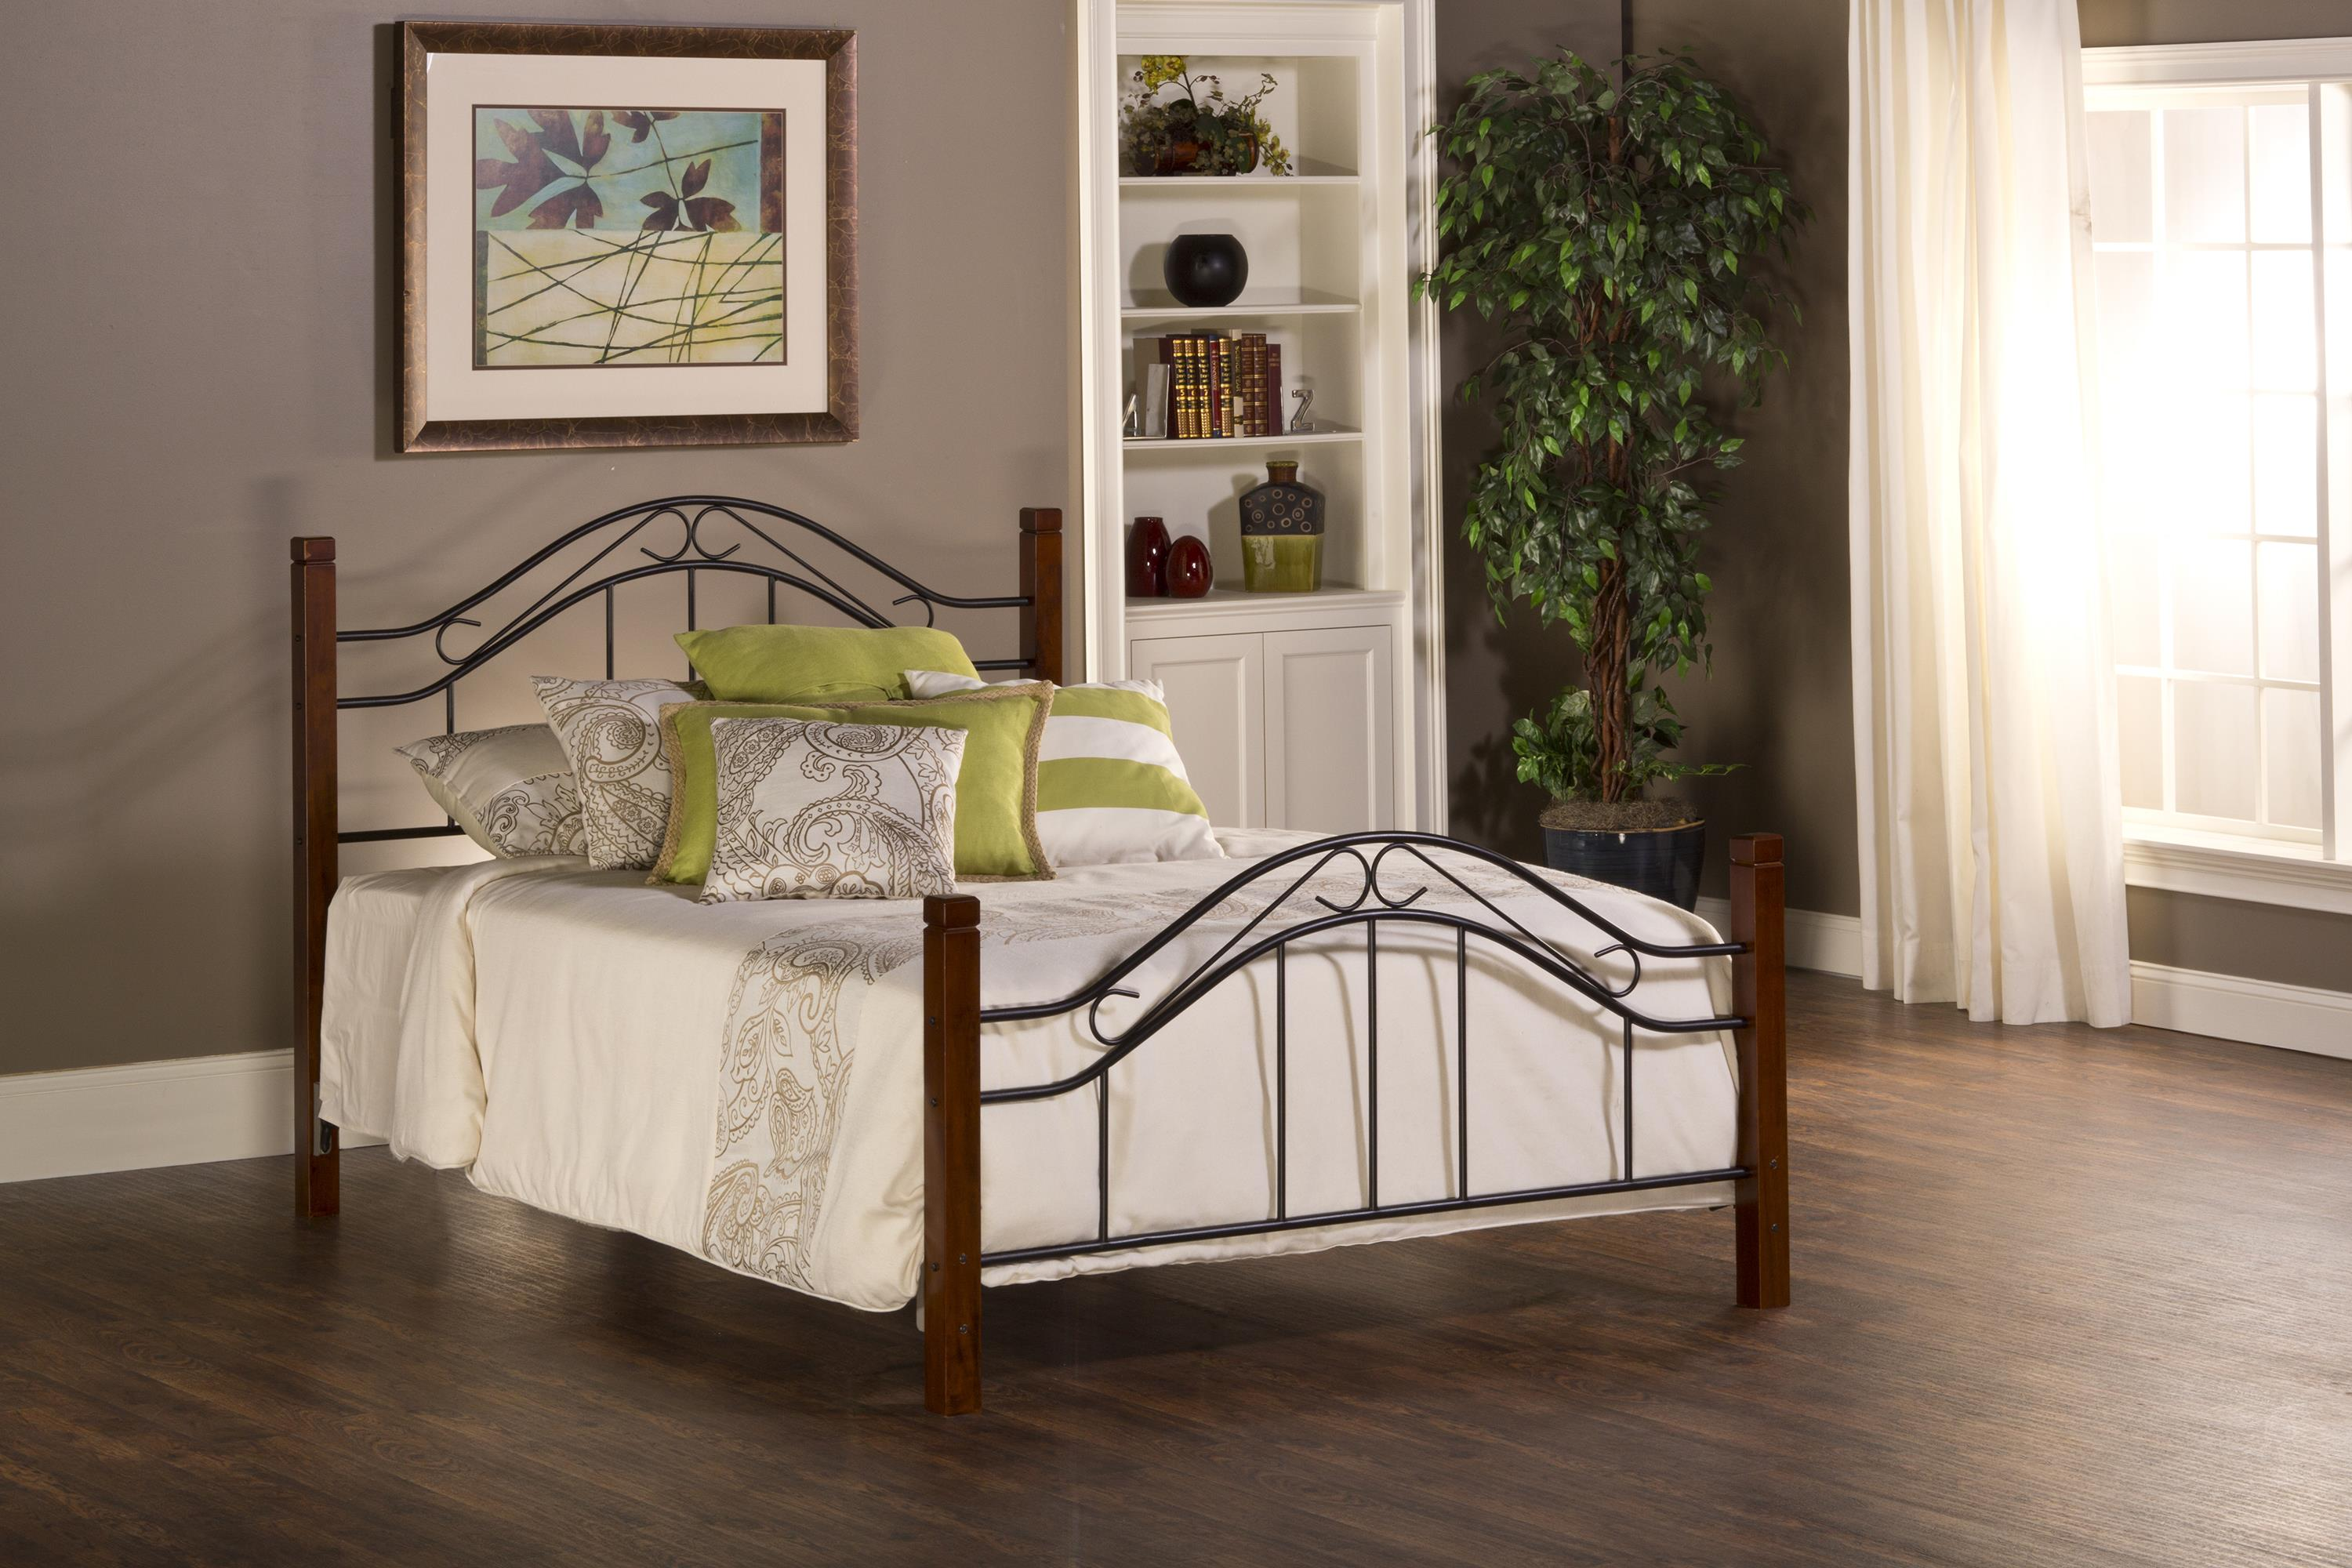 Metal Beds Matson Twin Bed Set Without Rails by Hillsdale at Carolina Direct